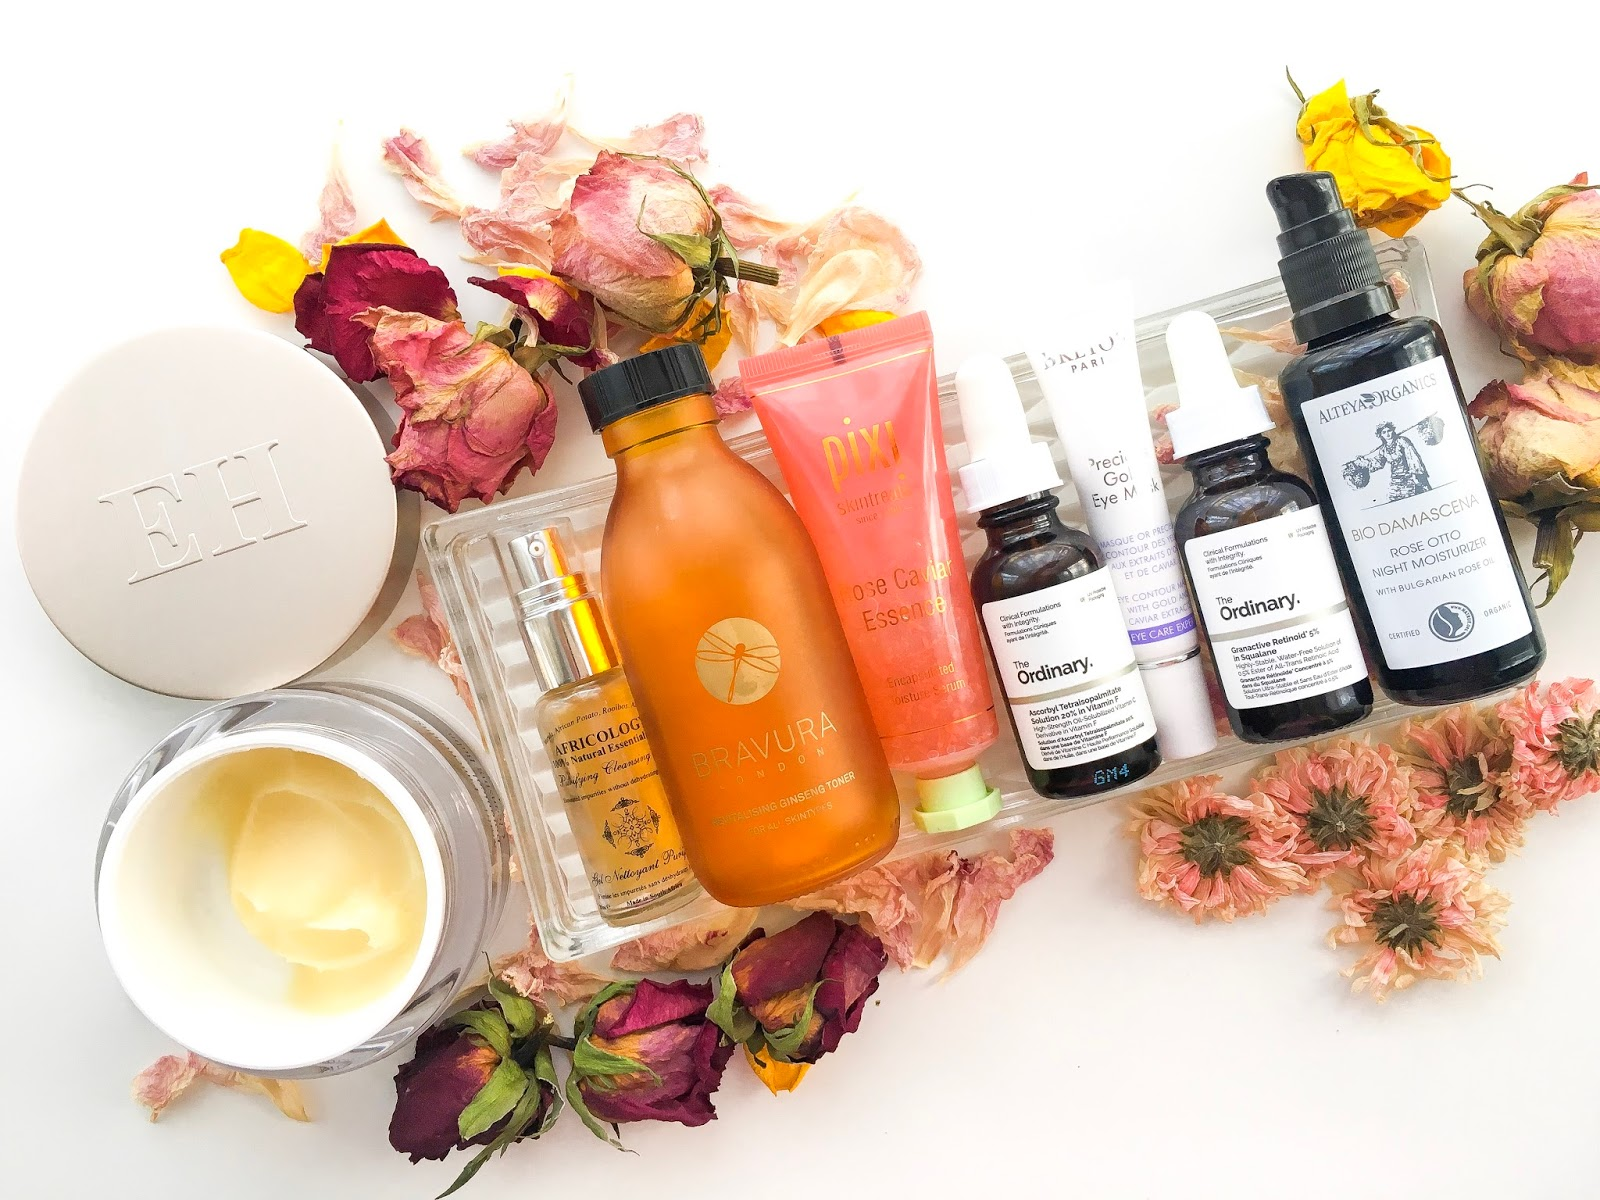 skincare routine, current skincare picks, emma hardie moringa cleansing balm review, bravura ginseng toner review, pixi rose essence review, christian breton gold eye mask review, alteya organics night cream review, the ordinary vitamin c review, africology cleansing gel review